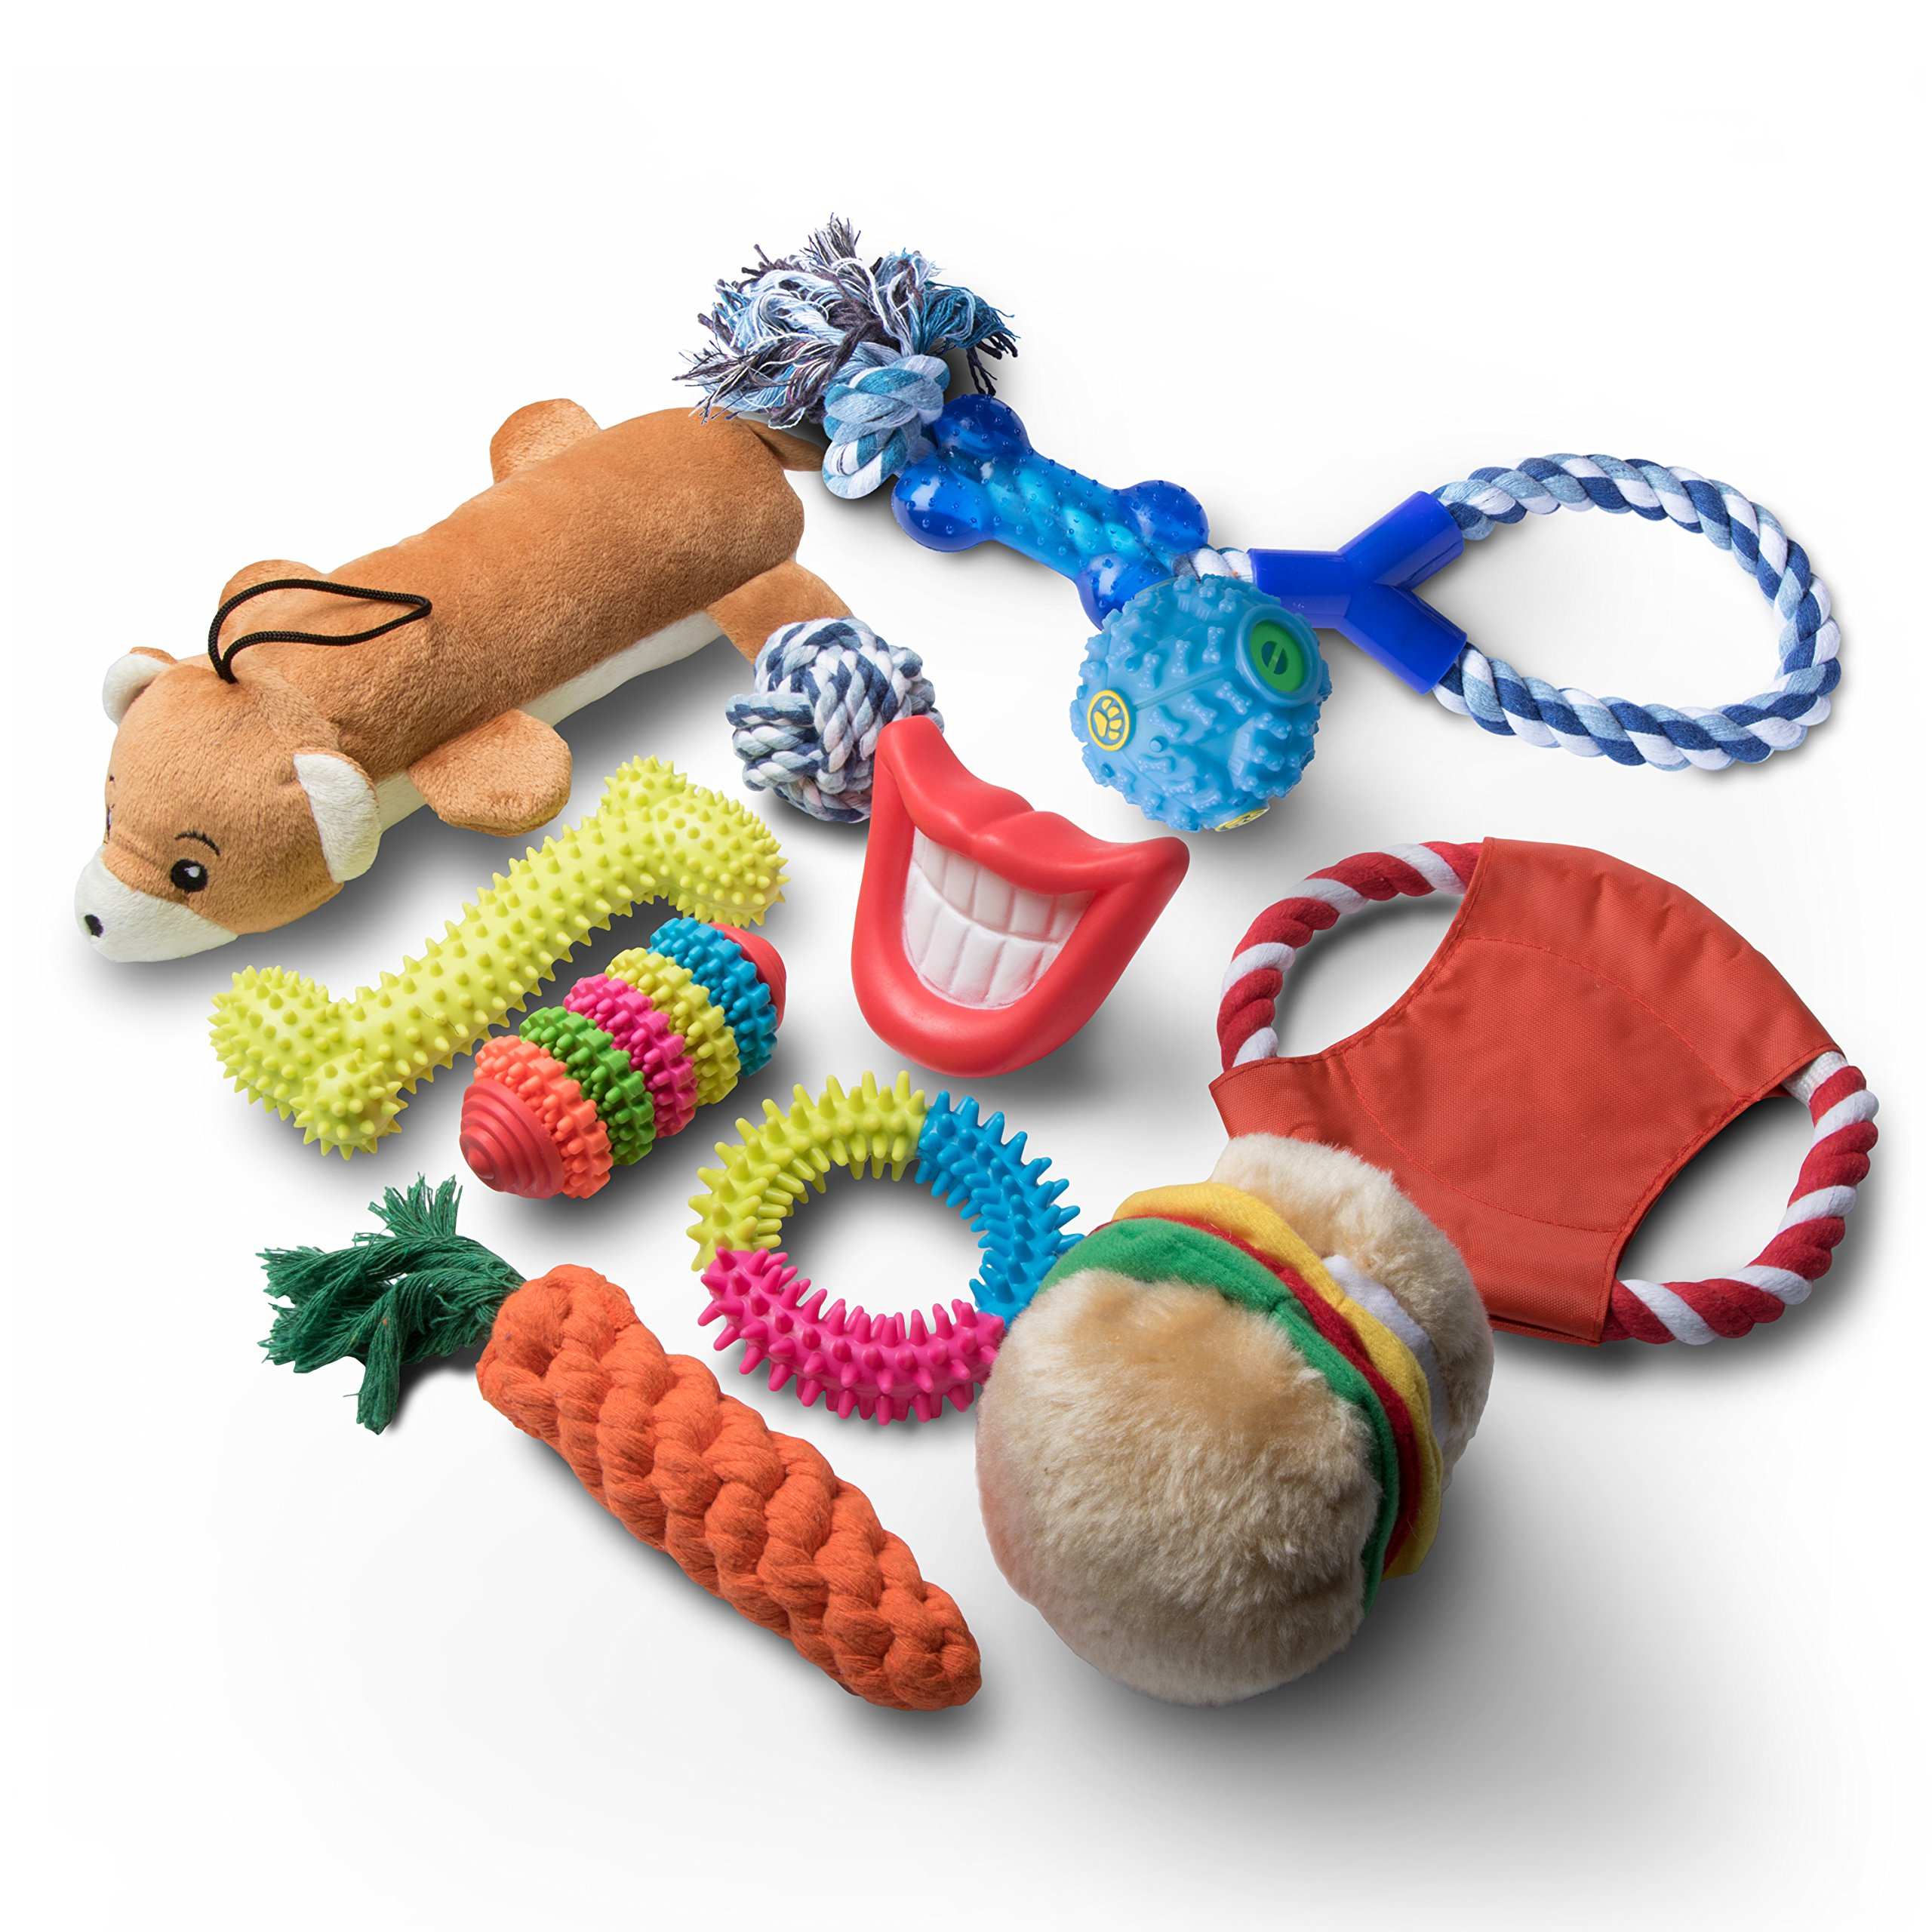 Livin' Well Dog Toys and Puppy Toys - 11 Piece Value Dog Toy Variety Pack with Dog Chew Toys and Teething Toys